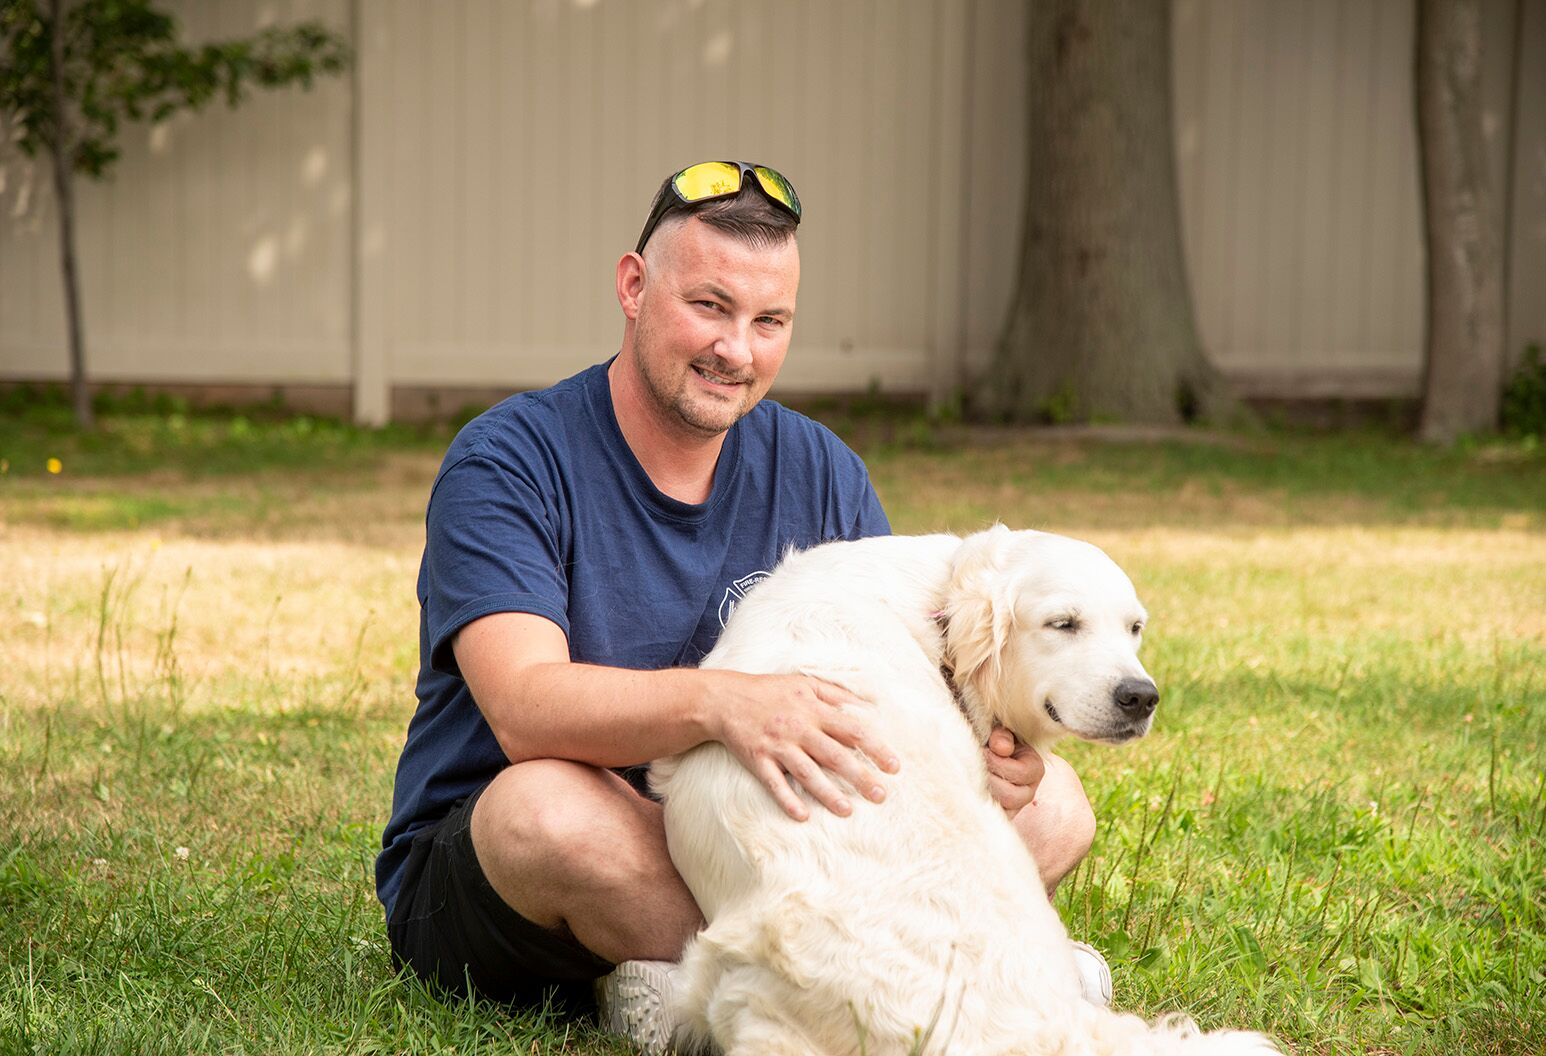 A man with sunglasses on his head sits on the grass with a large white dog.